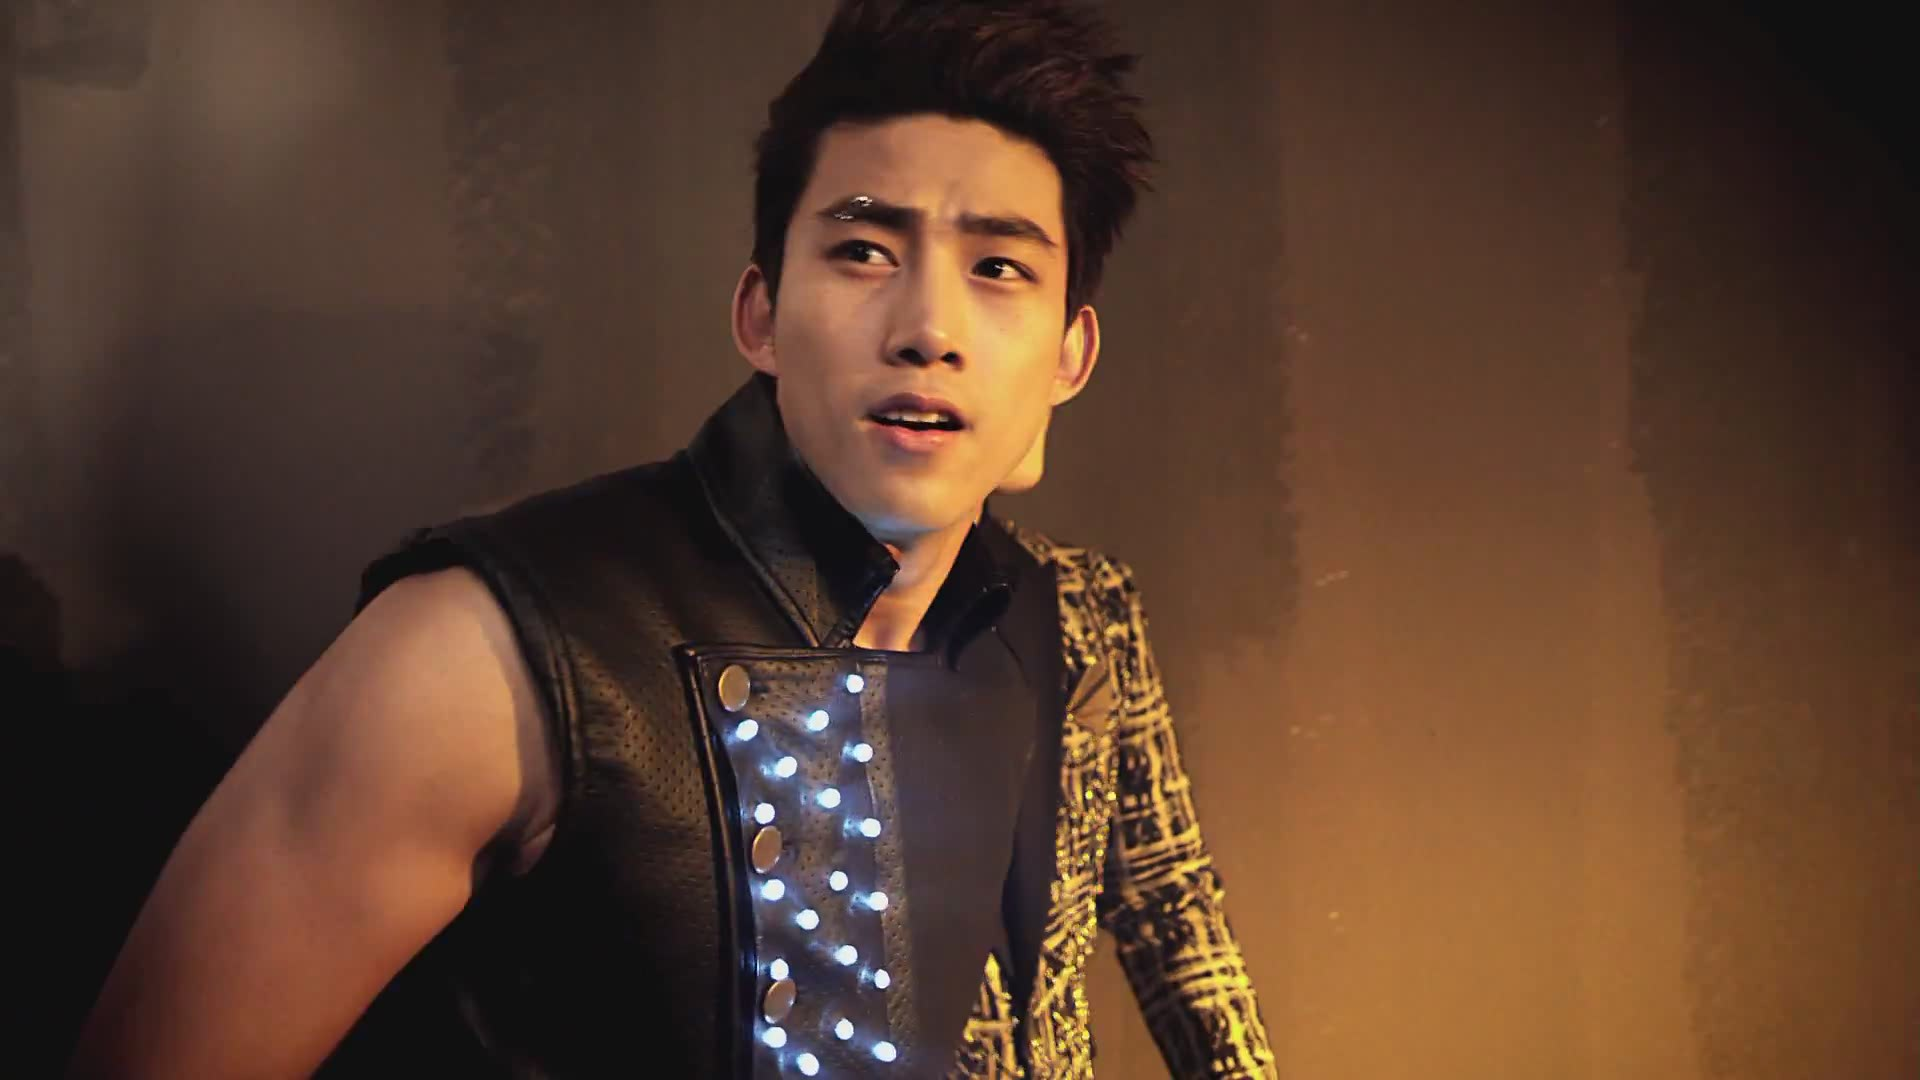 Taecyeon Hands Up MV - taecyeon 2pm Image (27831001) - Fanpop